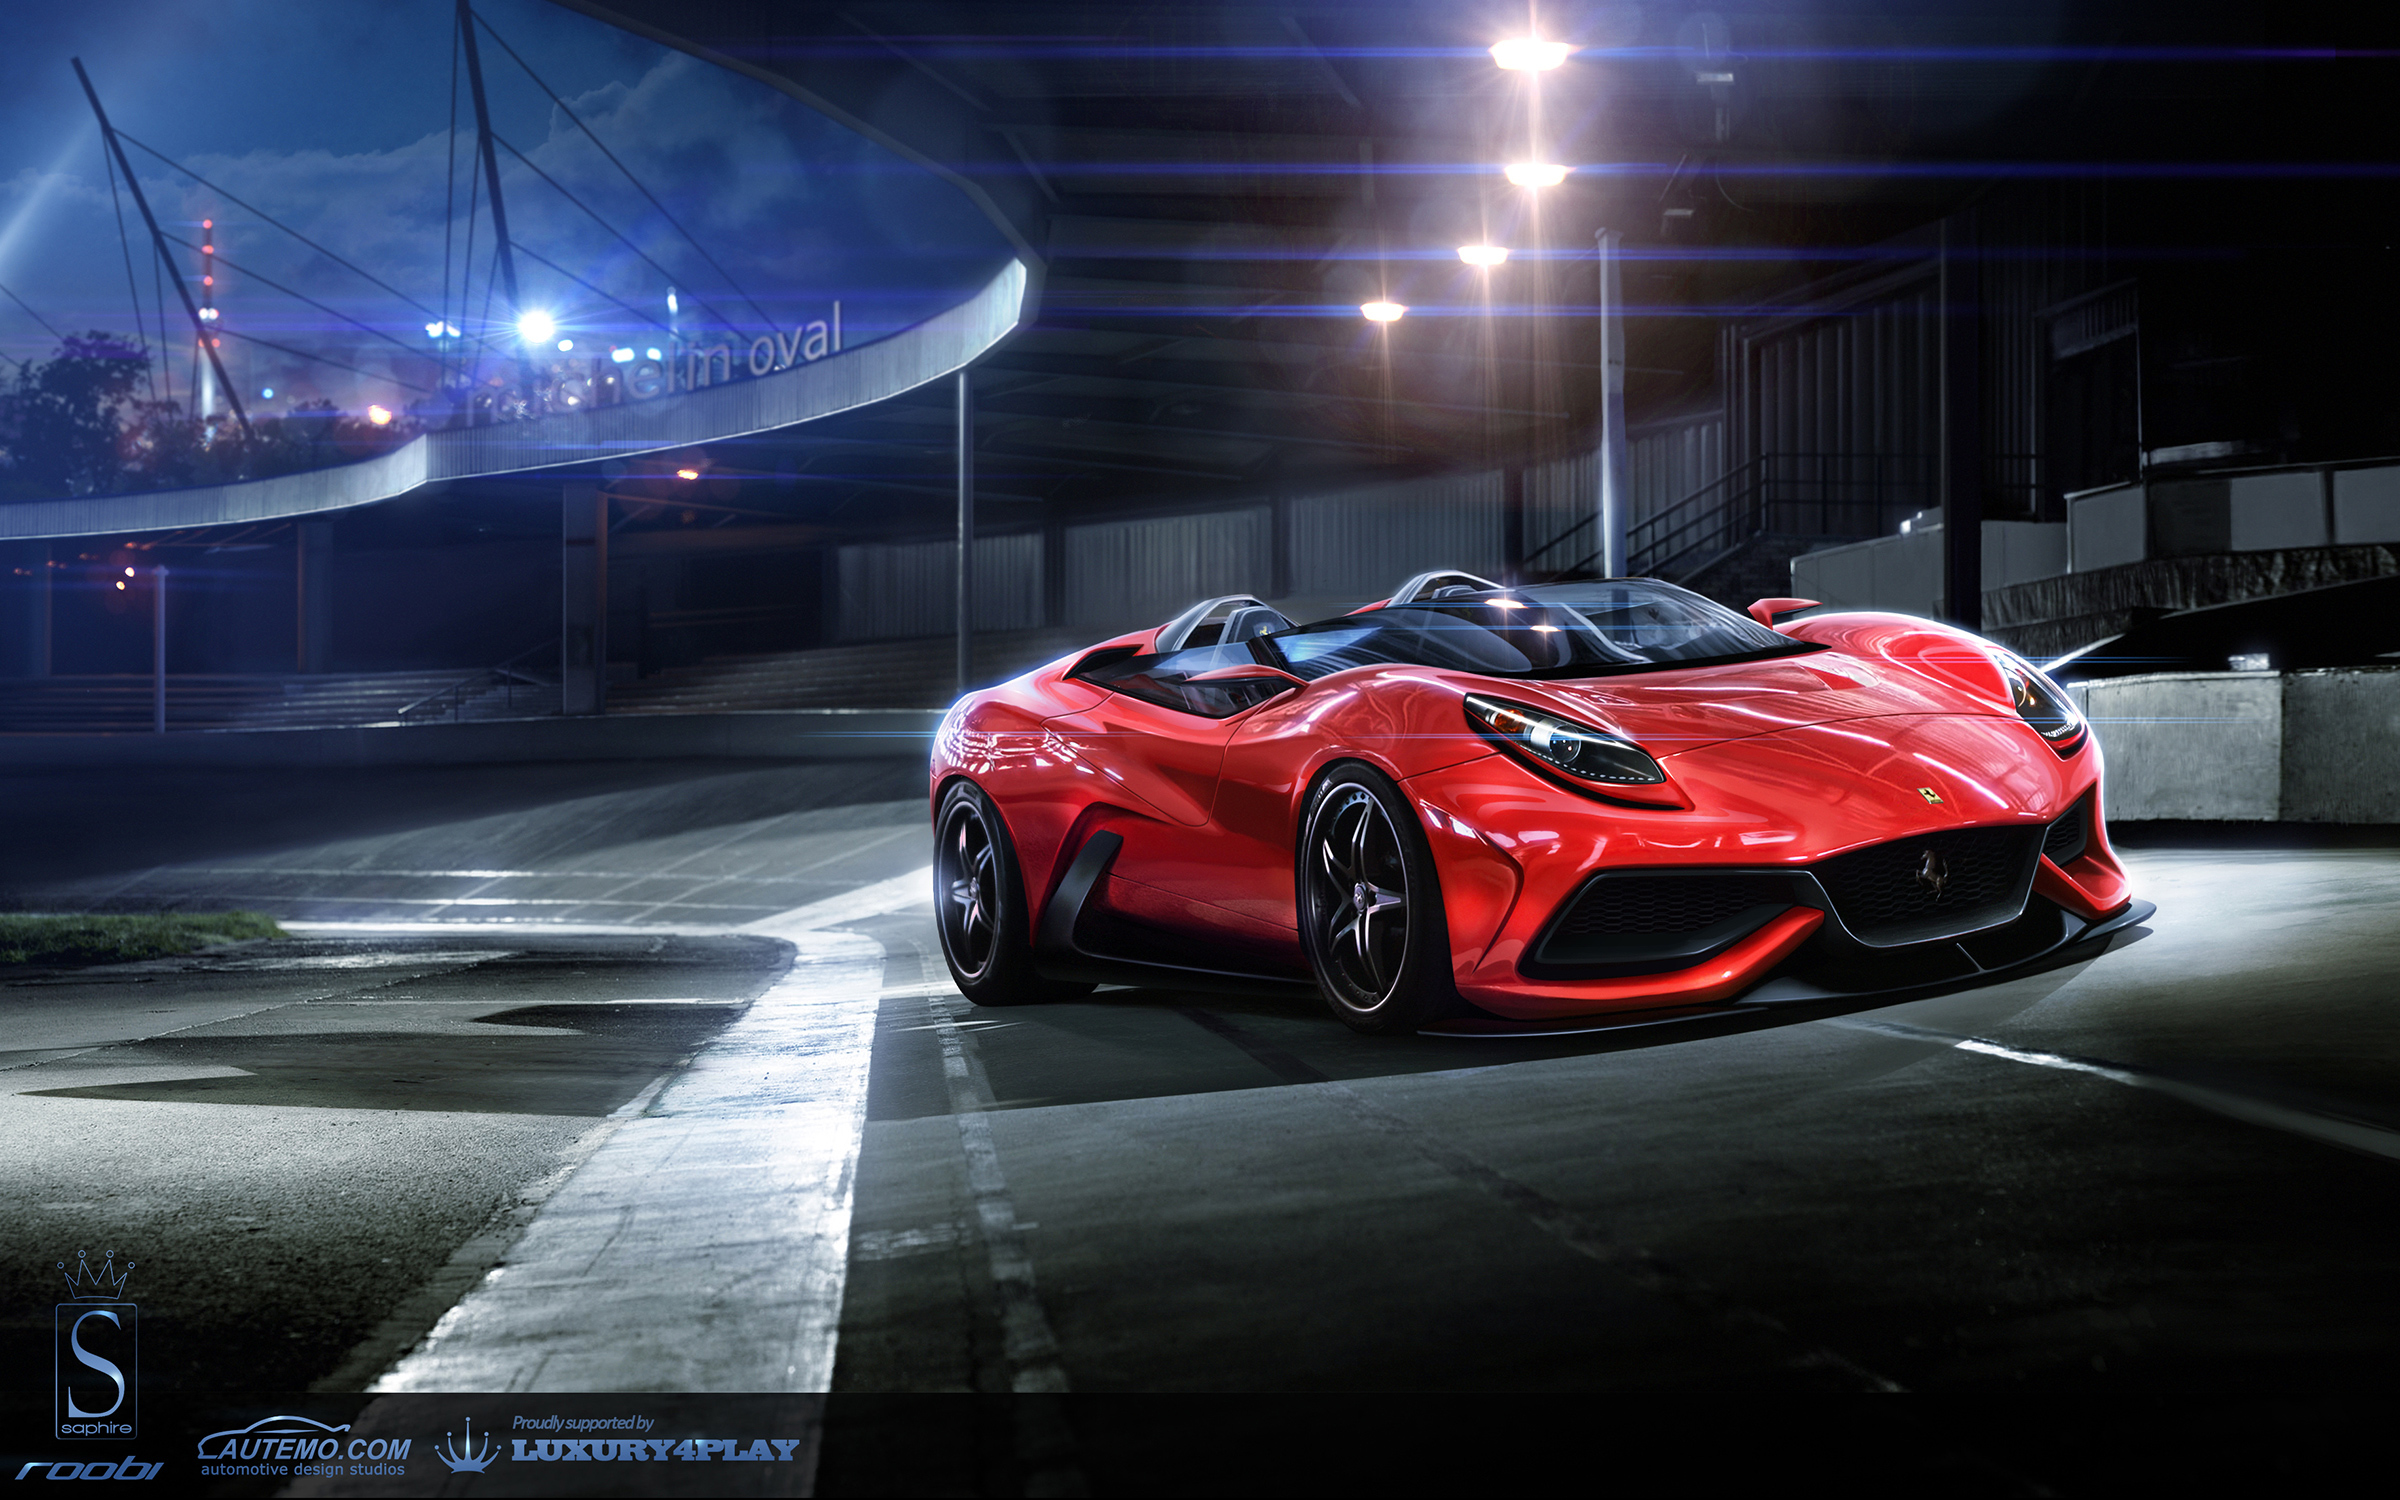 ferrari f12 berlinetta wallpaper hd car wallpapers